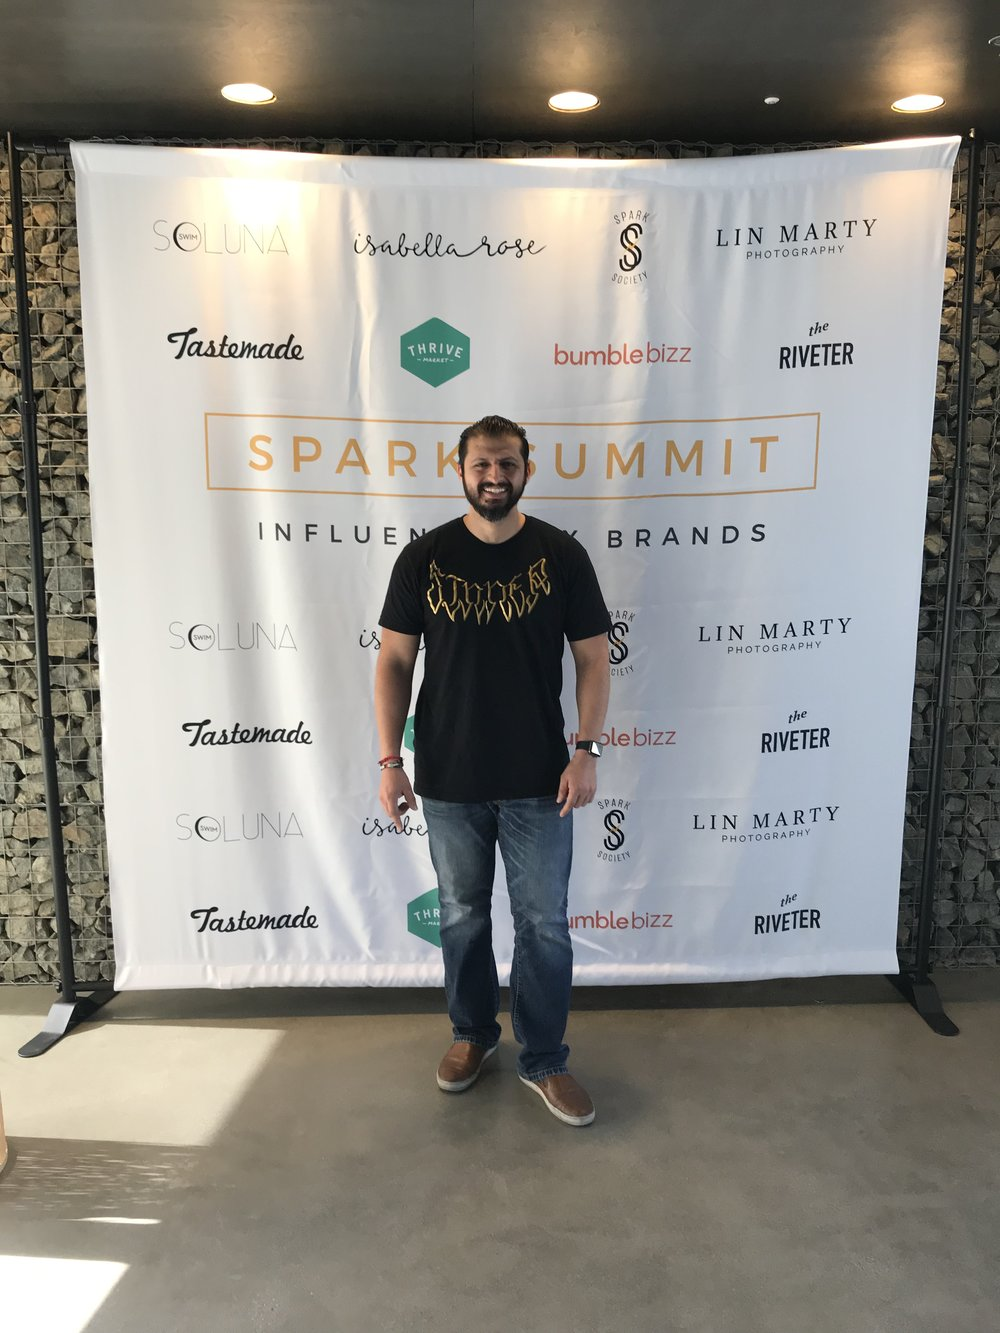 Me at the Spark Summit backdrop